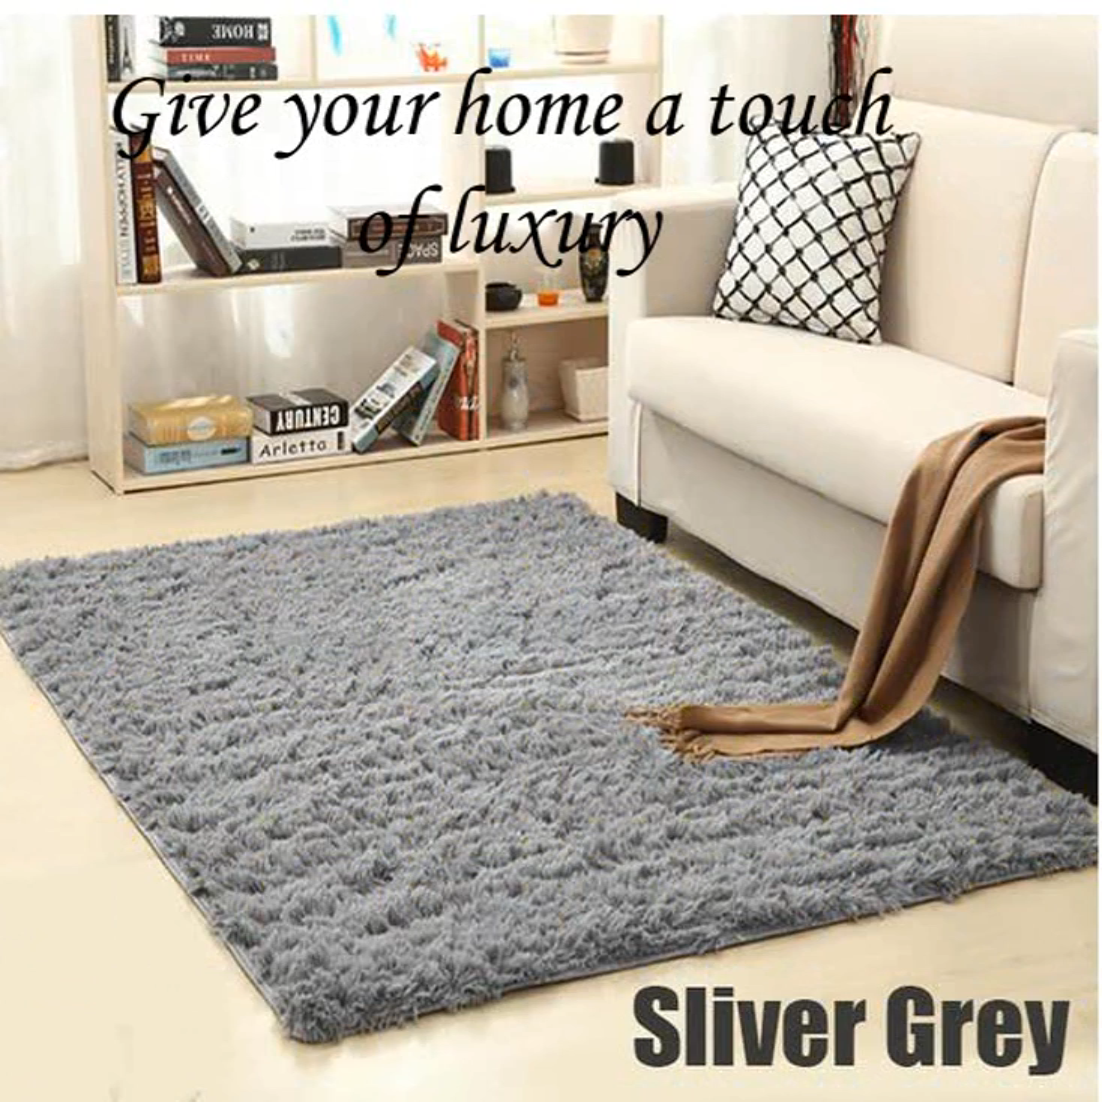 Give Your Home A Touch Of Luxury With This Living Room Rugs Givin